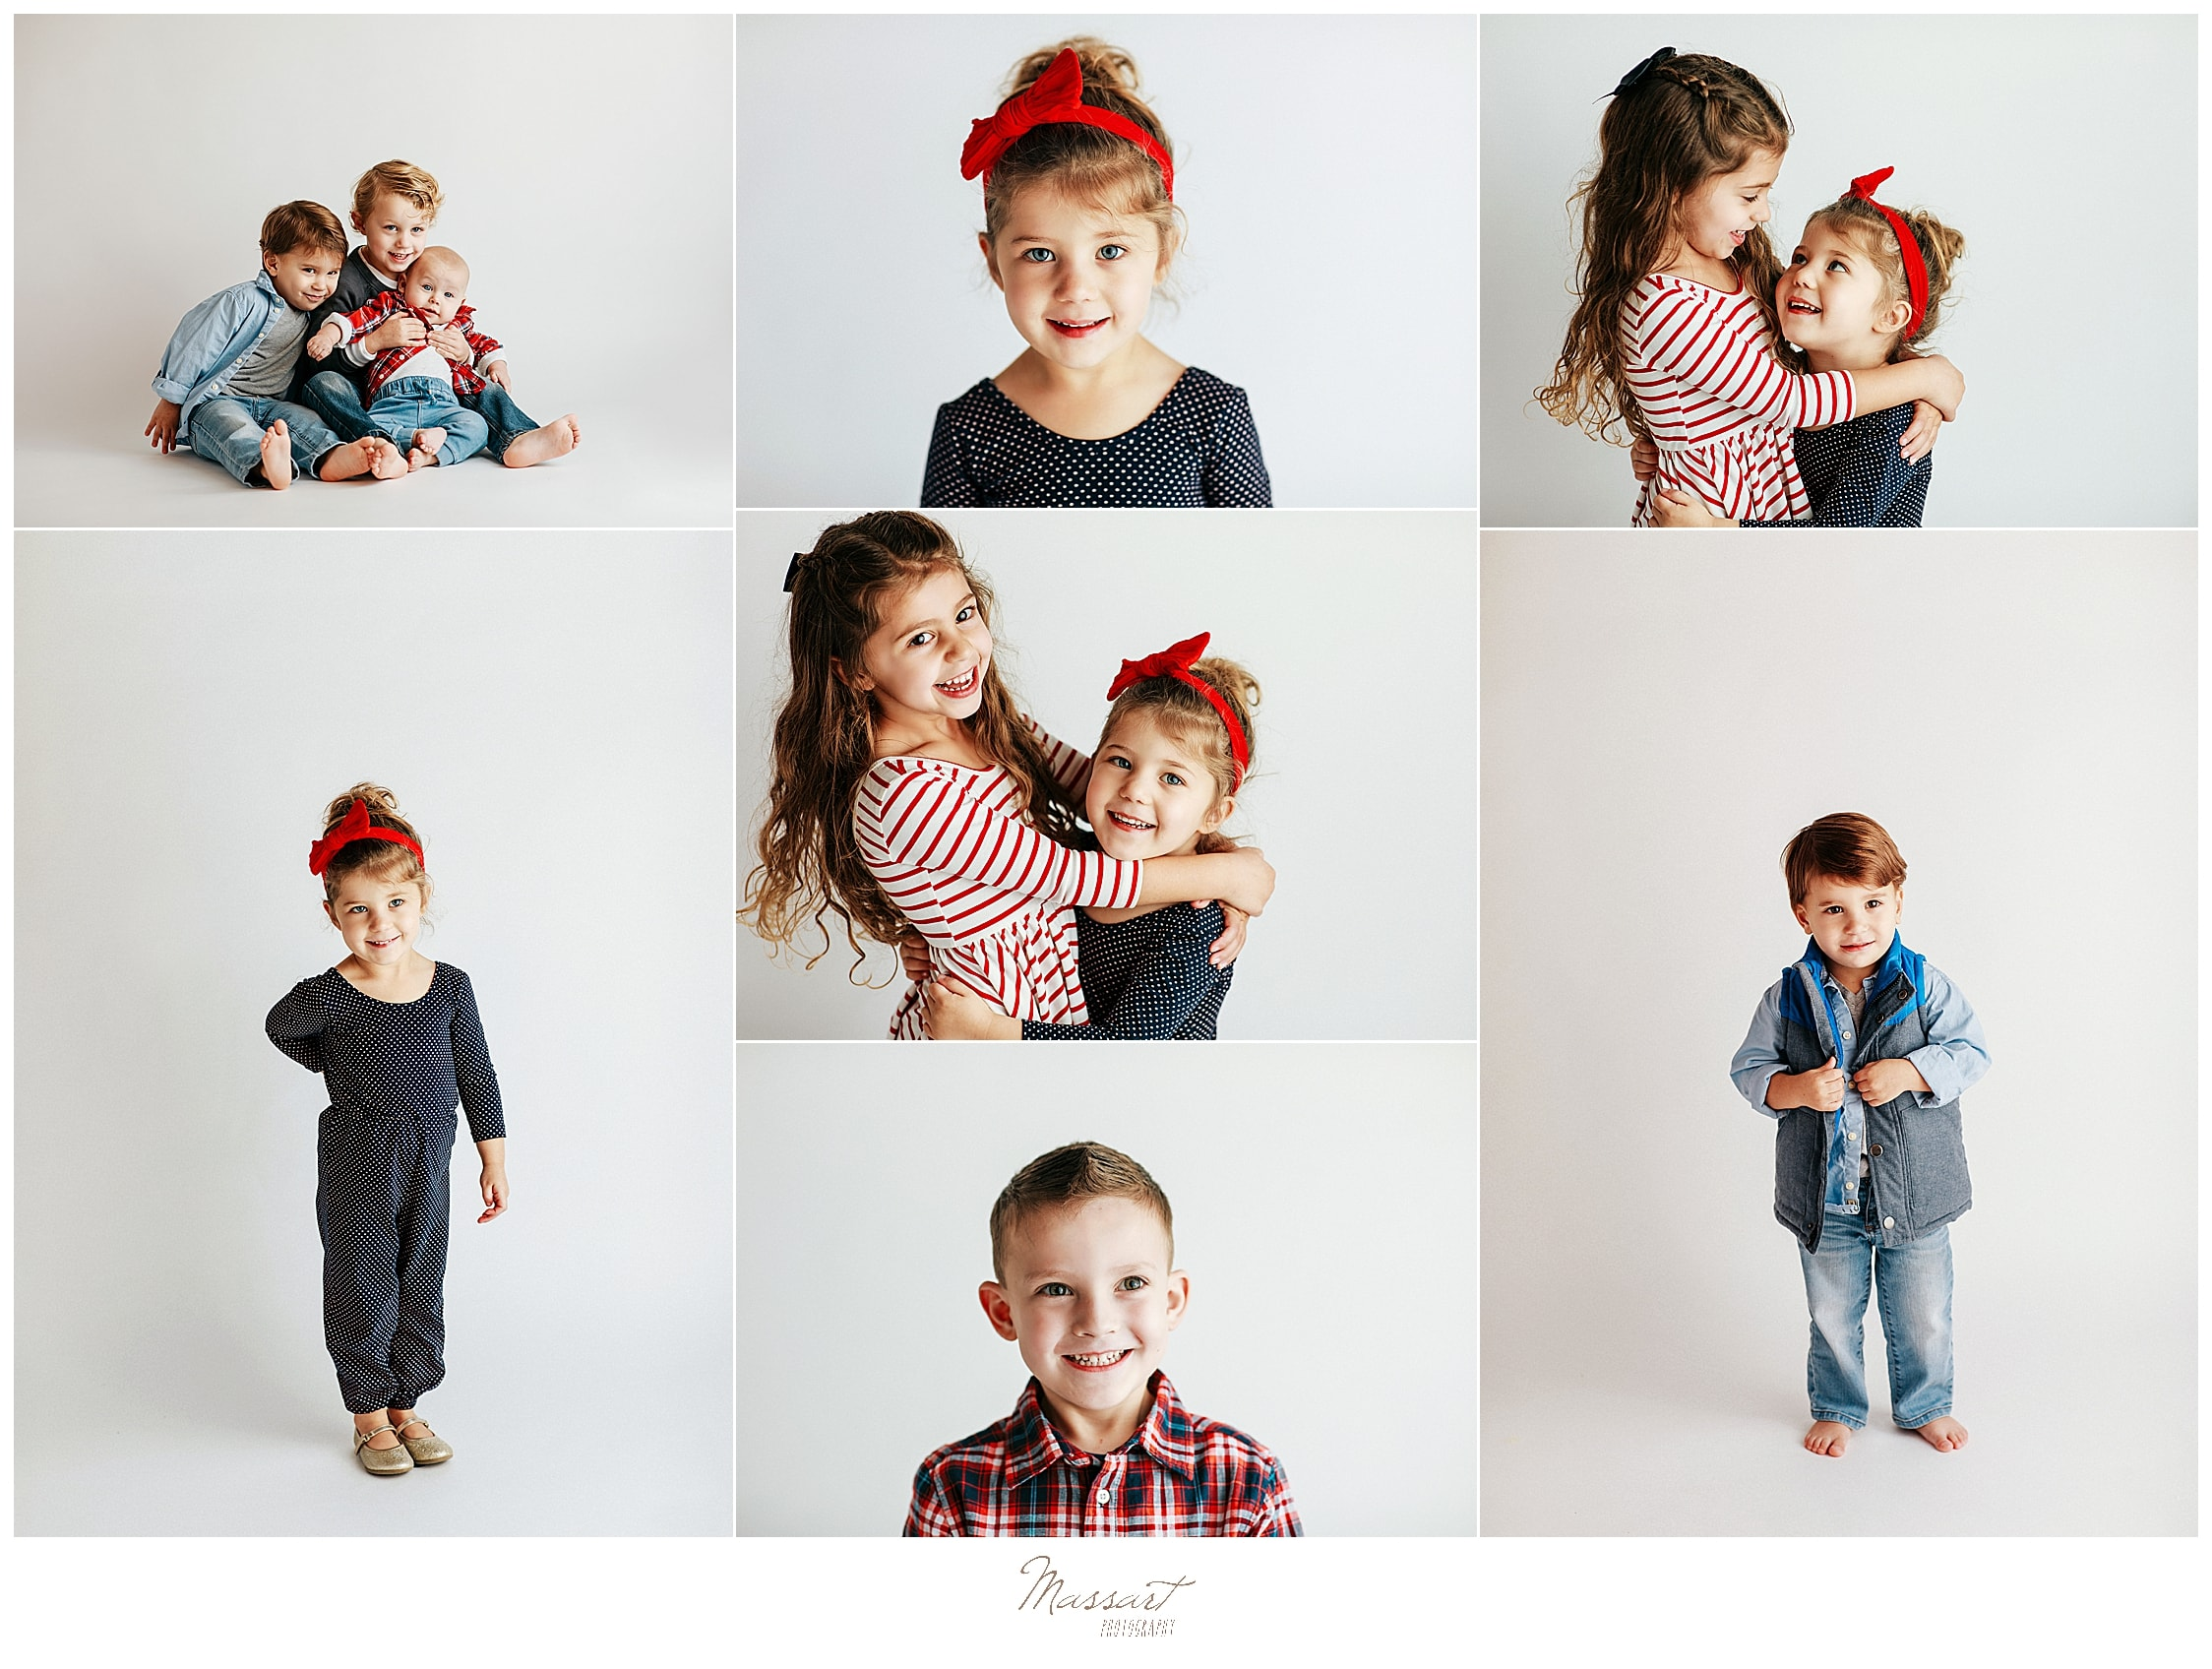 Daycare and school photos by Massart Photography in Rhode Island servicing schools in RI, CT and MA